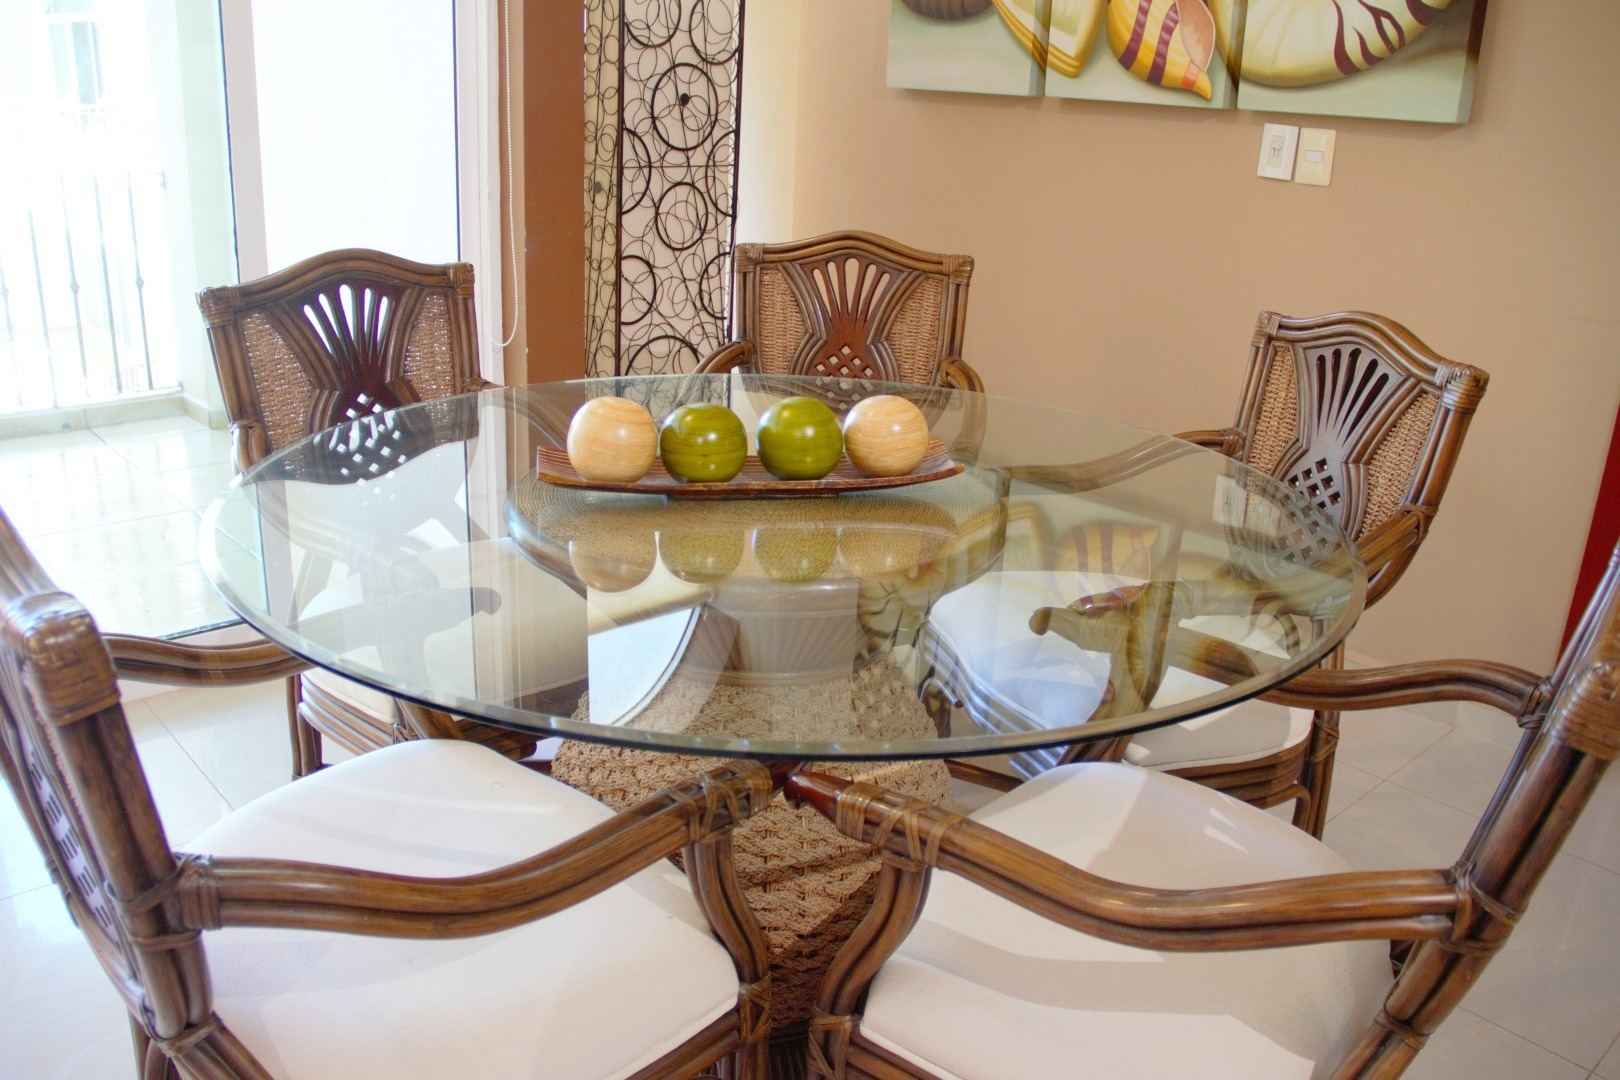 Dining table with seating for 5 people.